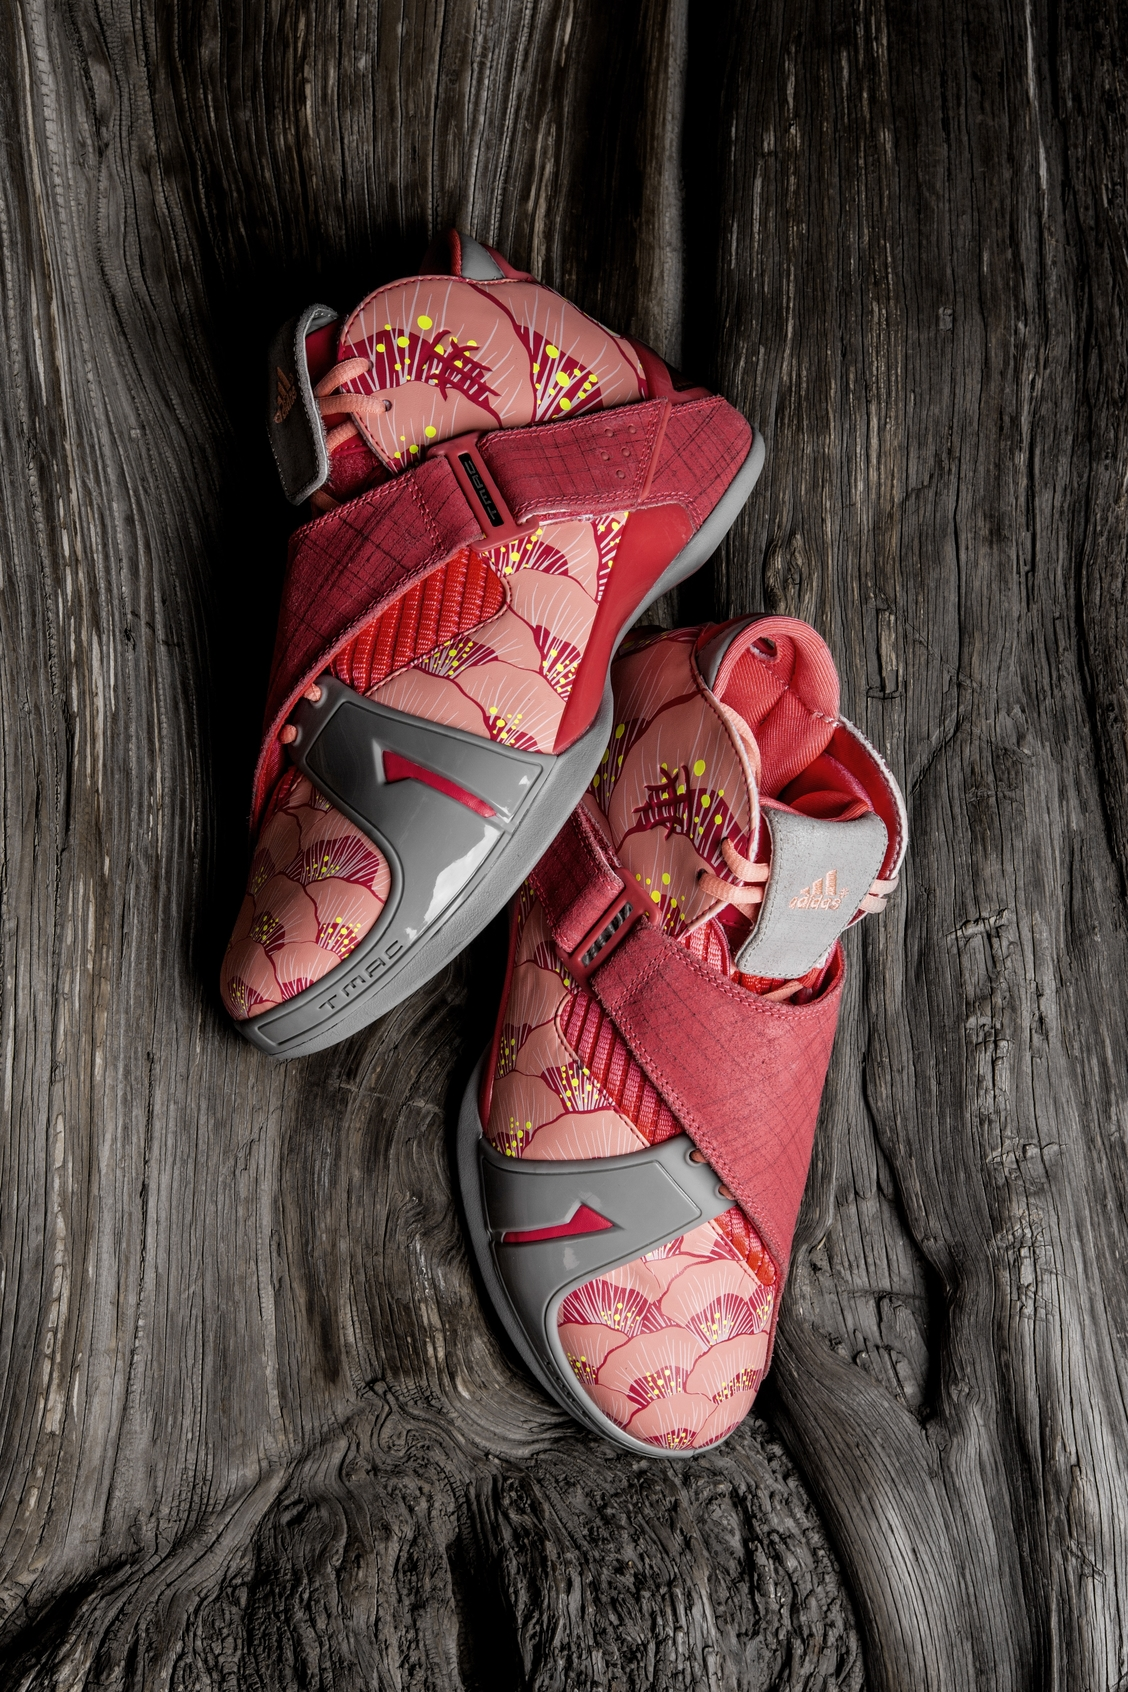 Who Knew? The adidas T-MAC 5 is a 'Florist'-1